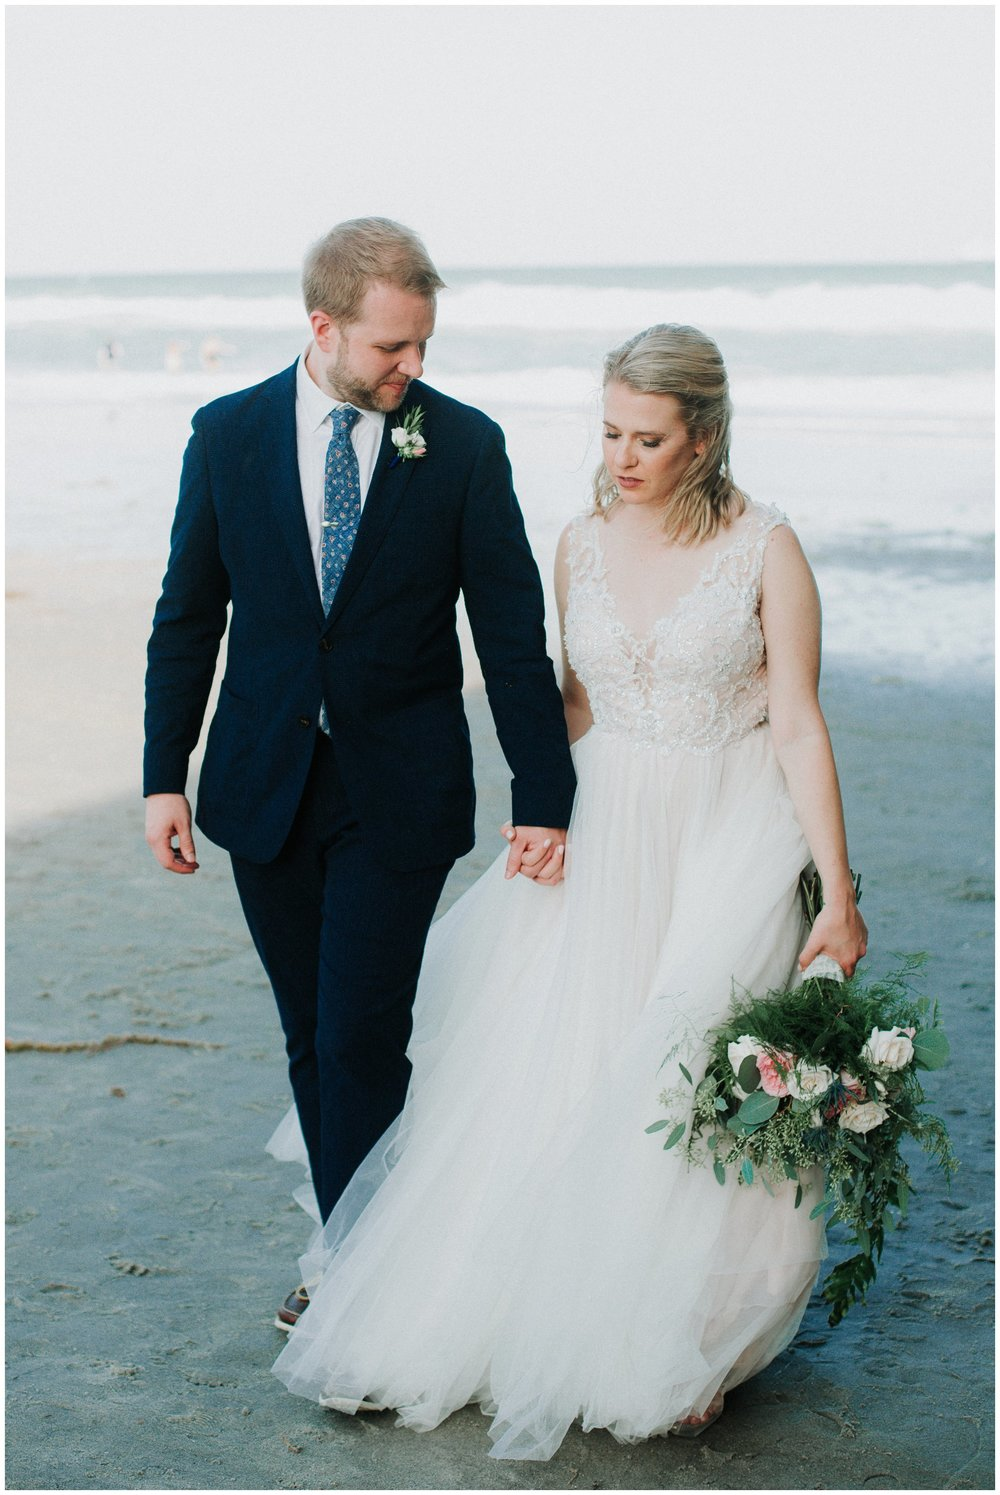 kaley and kevin-coco beach pier wedding-kimberly smith photography_0060.jpg